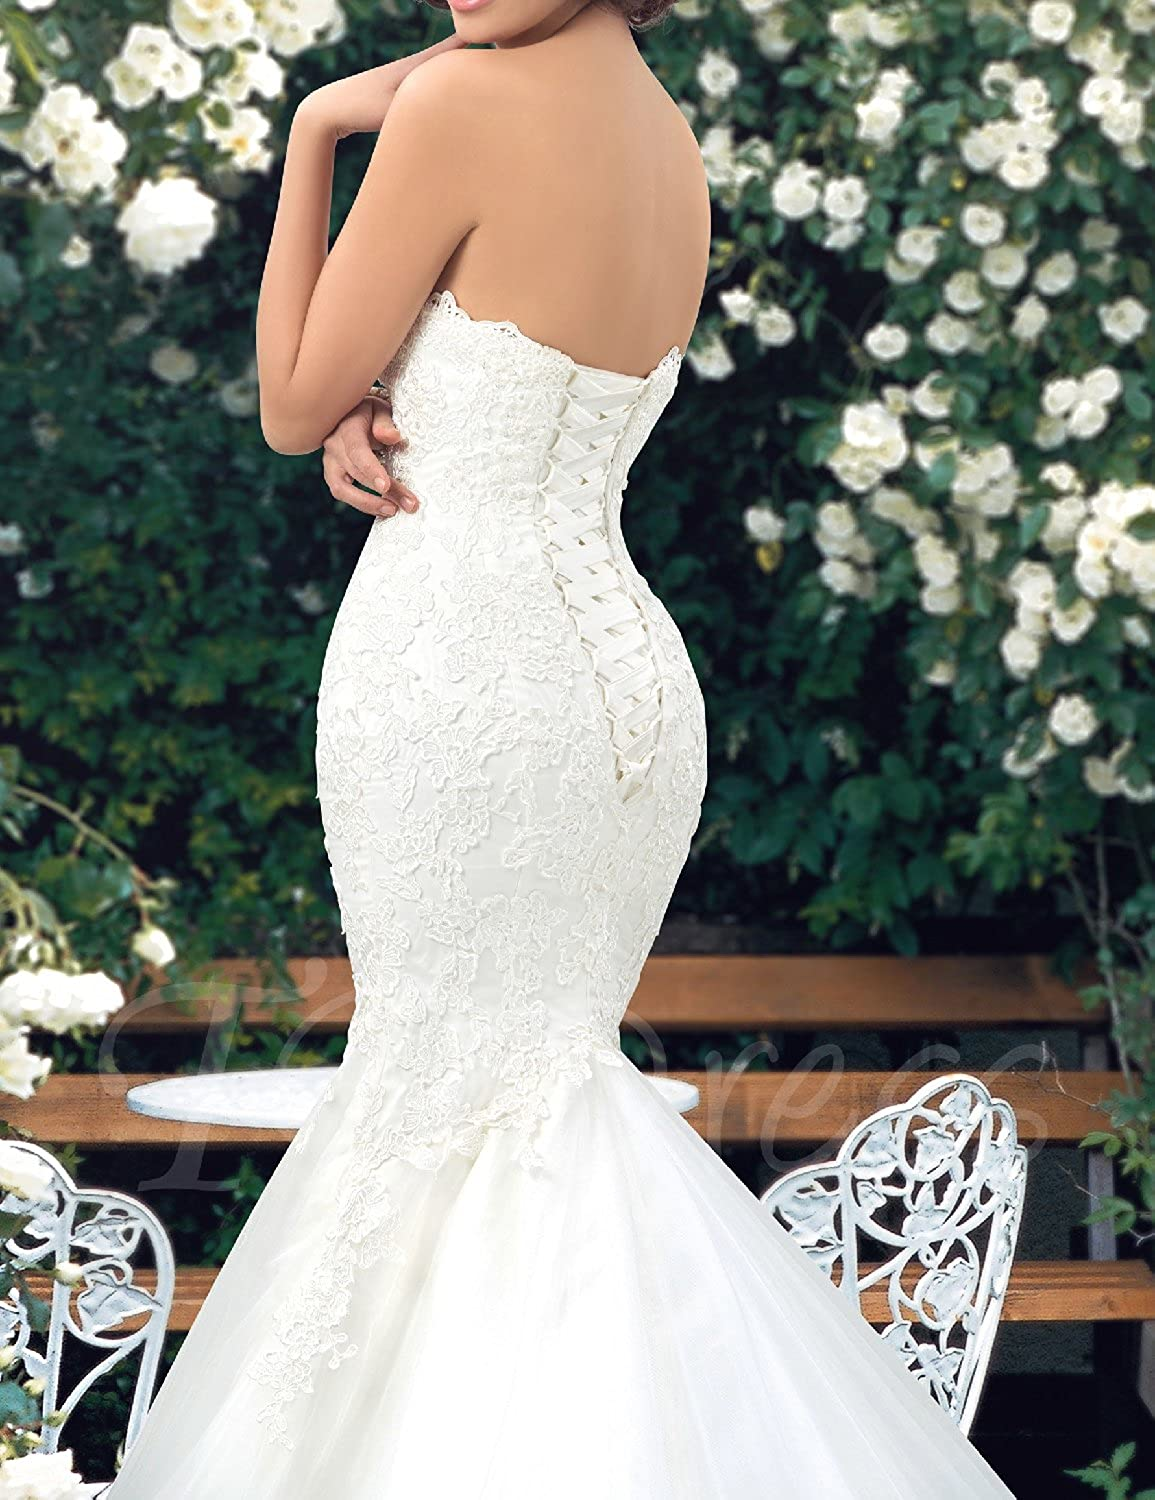 Udresses Womens Sweetheart Mermaid Wedding Dress Lace Bridal Dresses ...